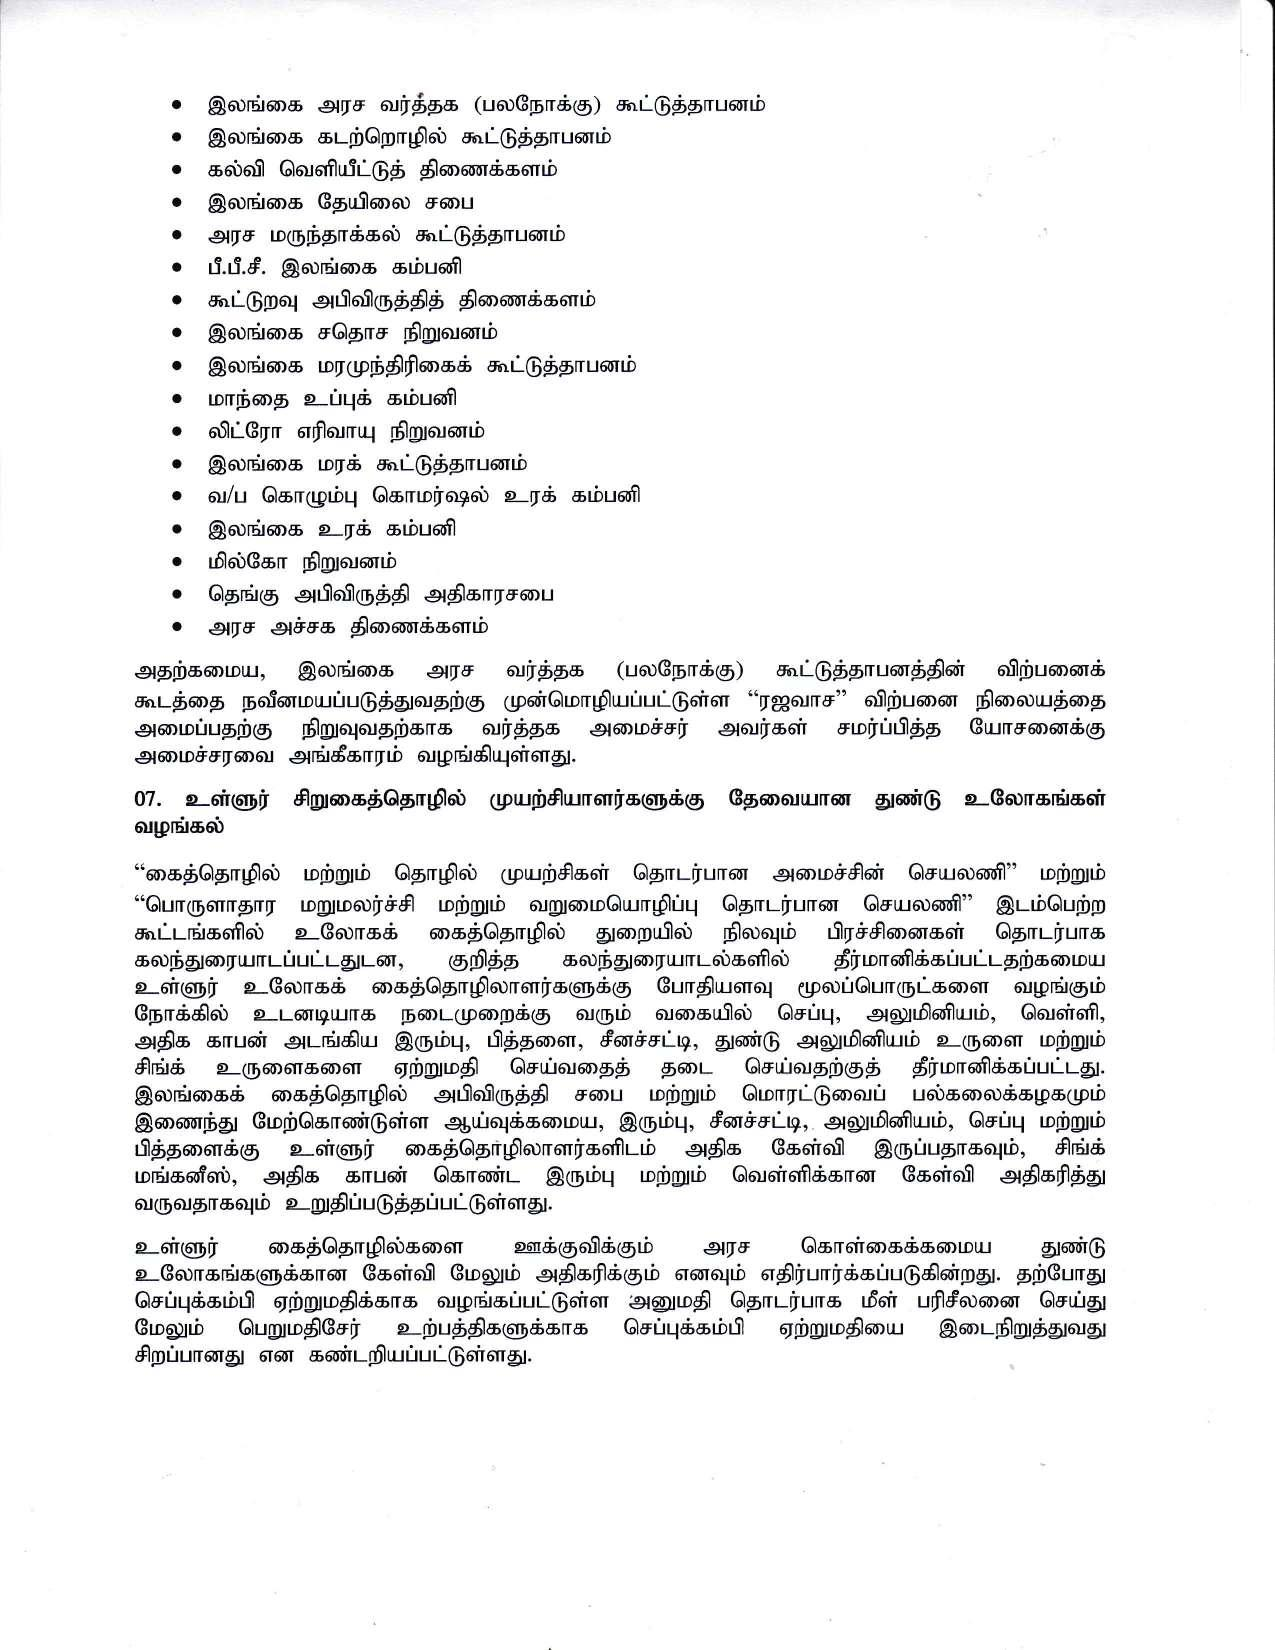 Cabinet Decsion on 09.11.2020 Tamil page 003